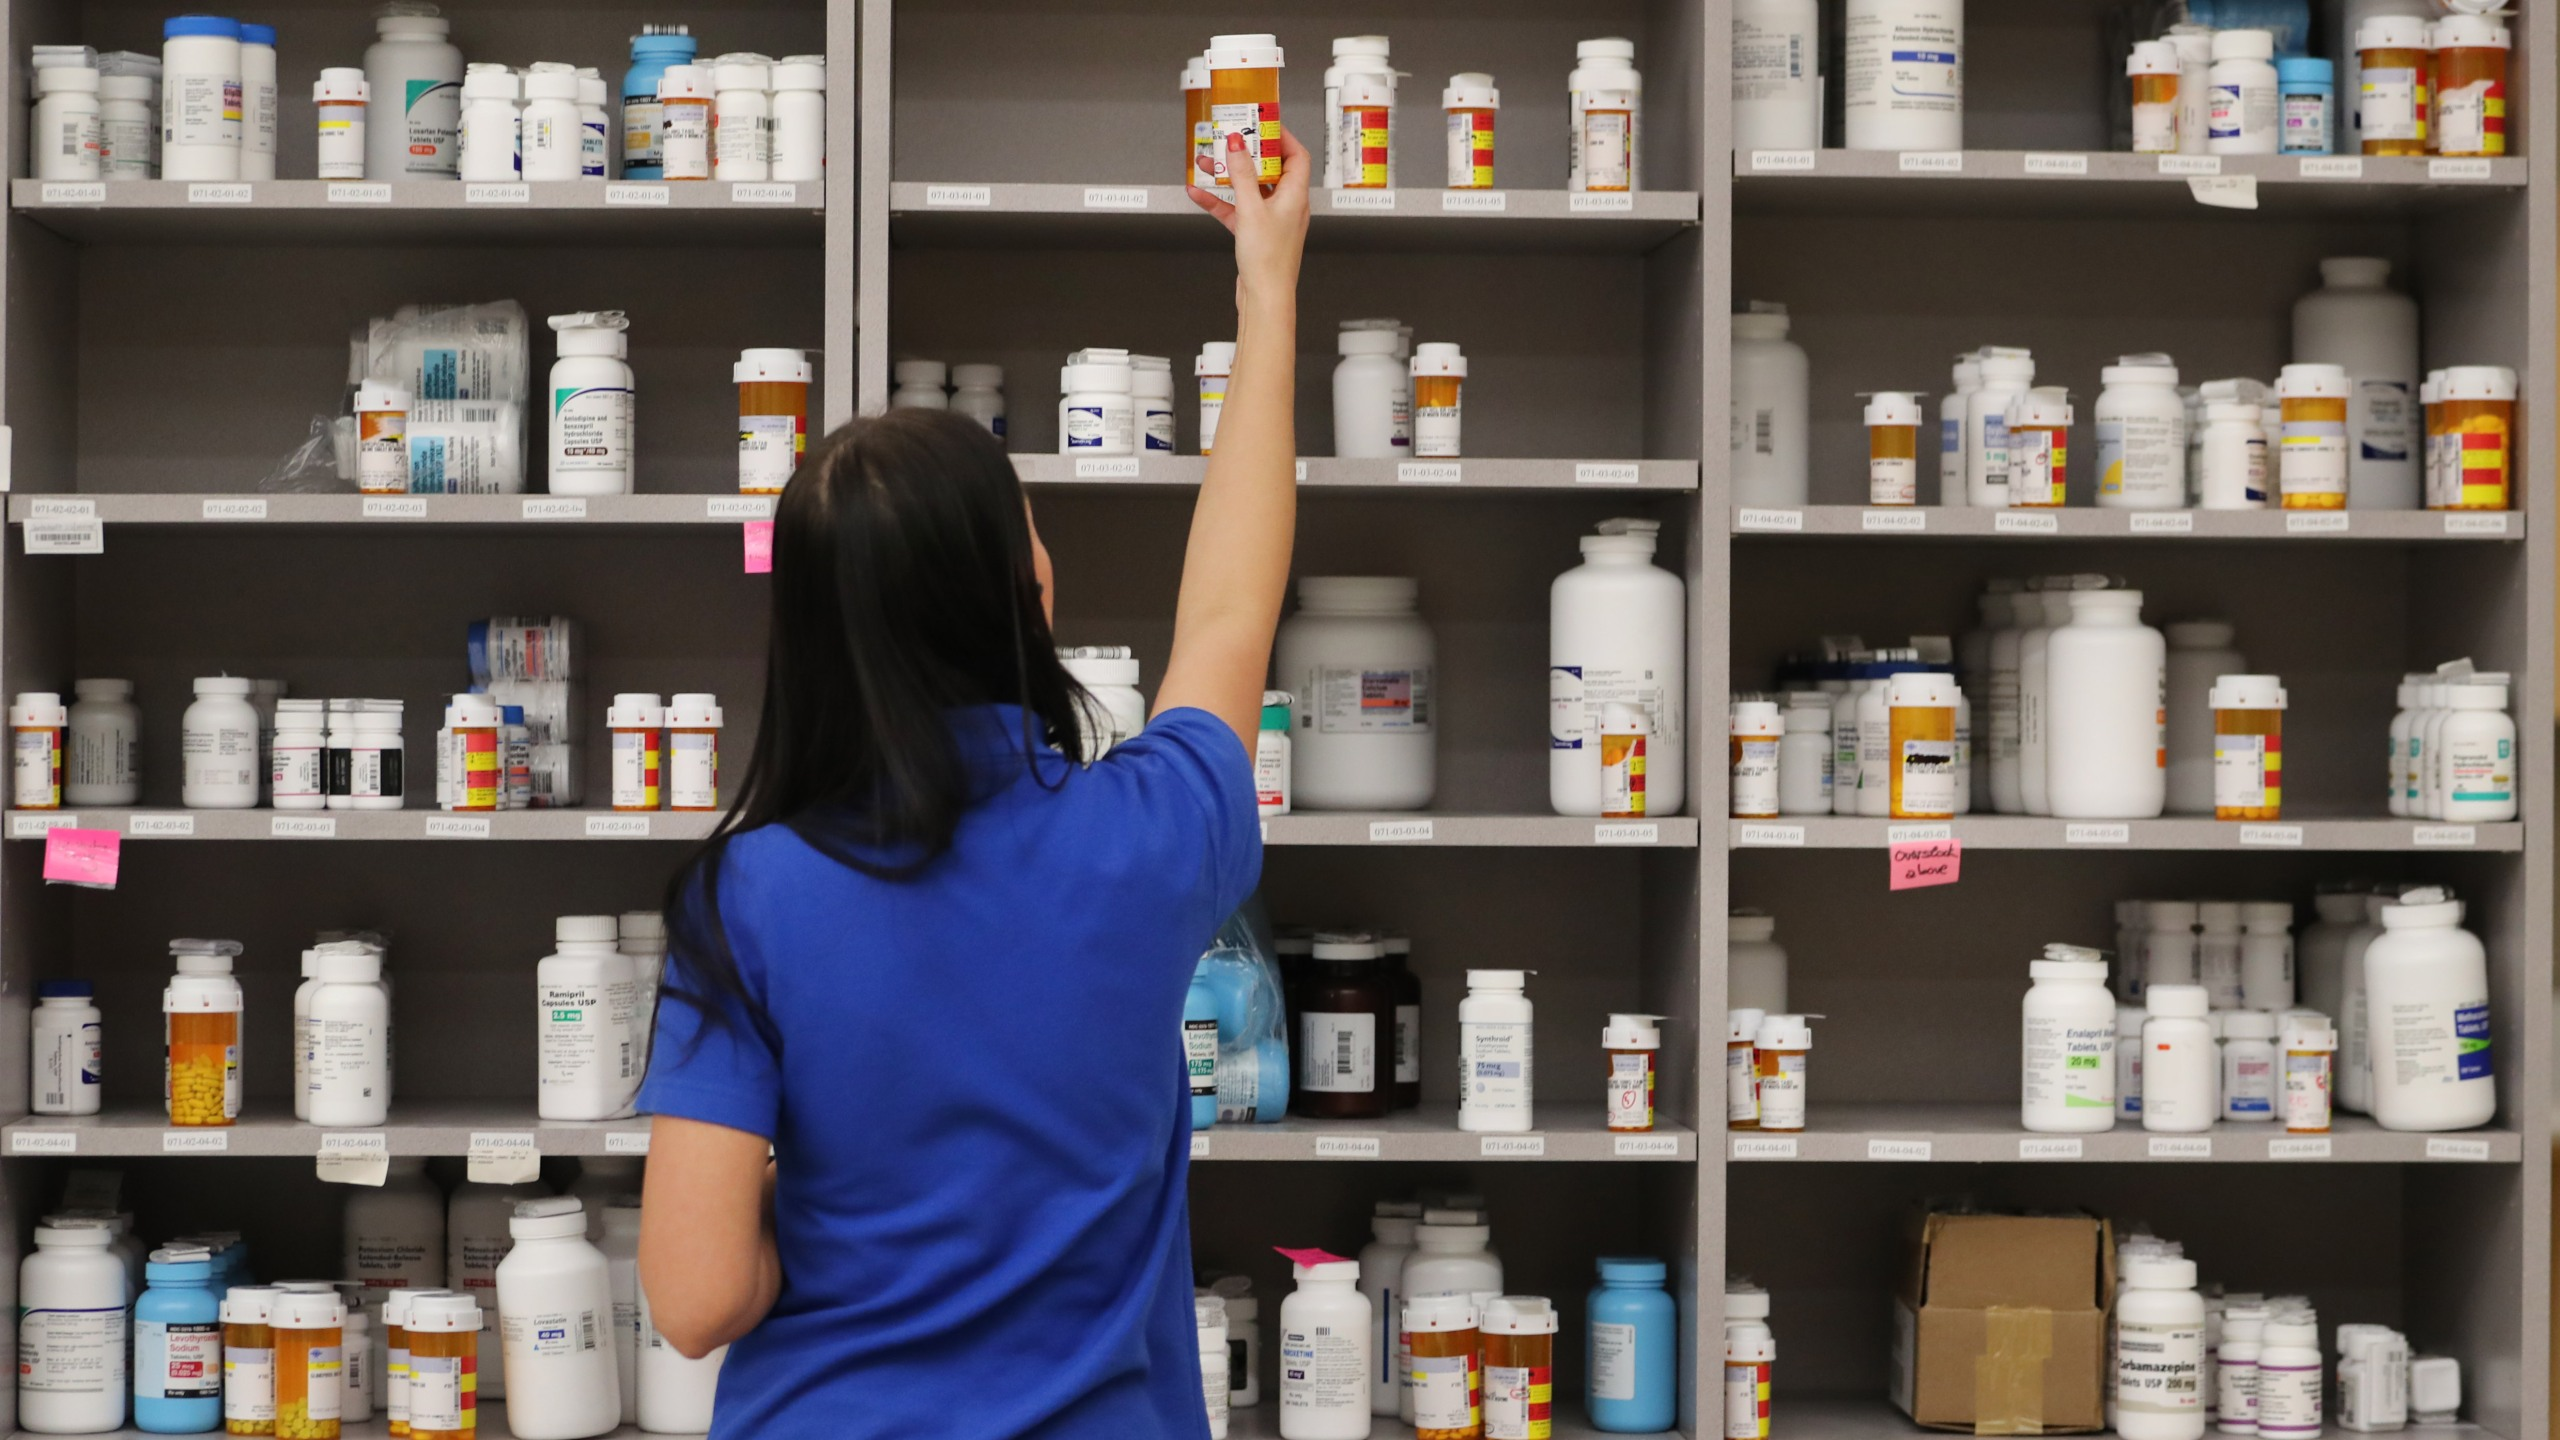 A pharmacy technician grabs a bottle of drugs off a shelve at the central pharmacy of Intermountain Heathcare on Sept. 10, 2018, in Midvale, Utah. (Credit: George Frey/Getty Images)